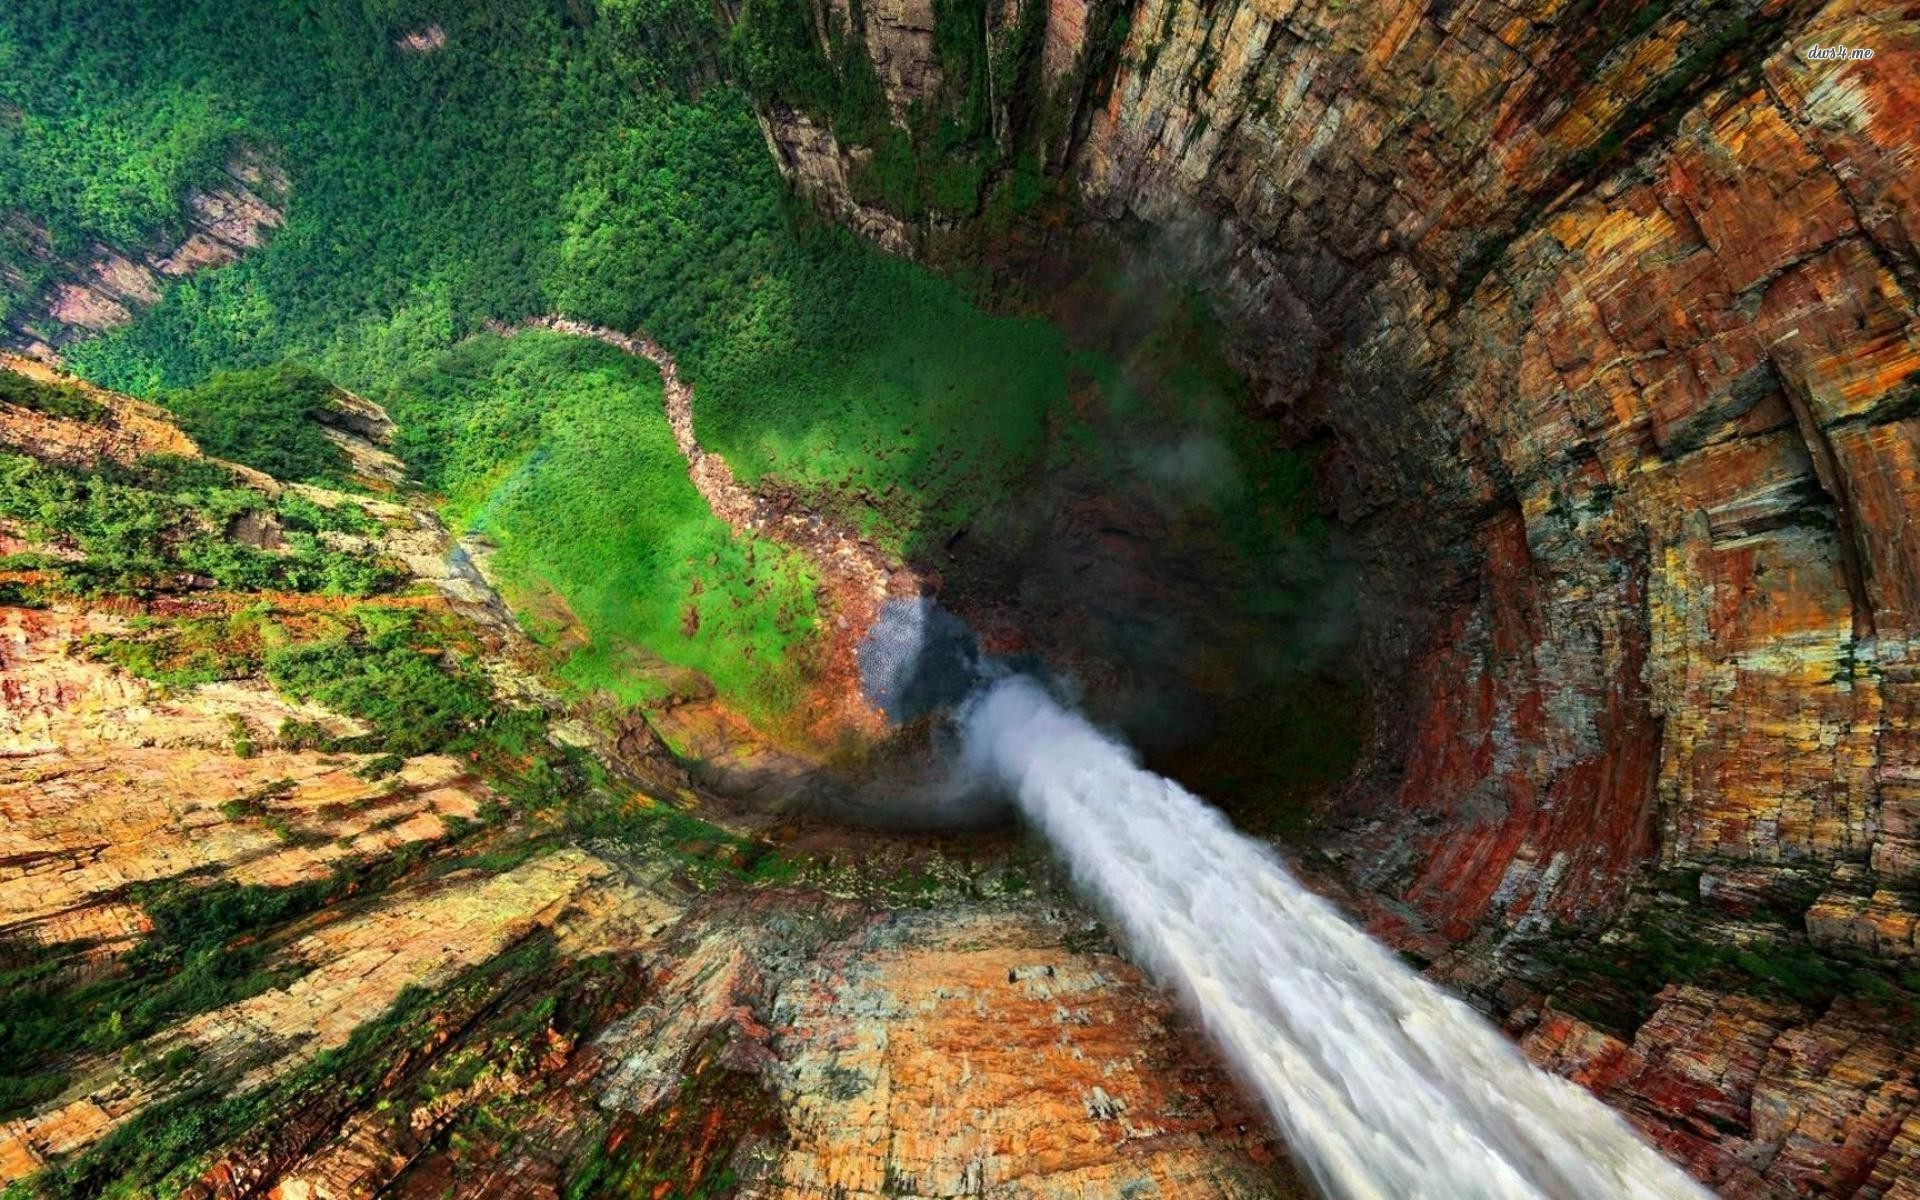 highresoultion angel falls venezuela nature wallpaper free download